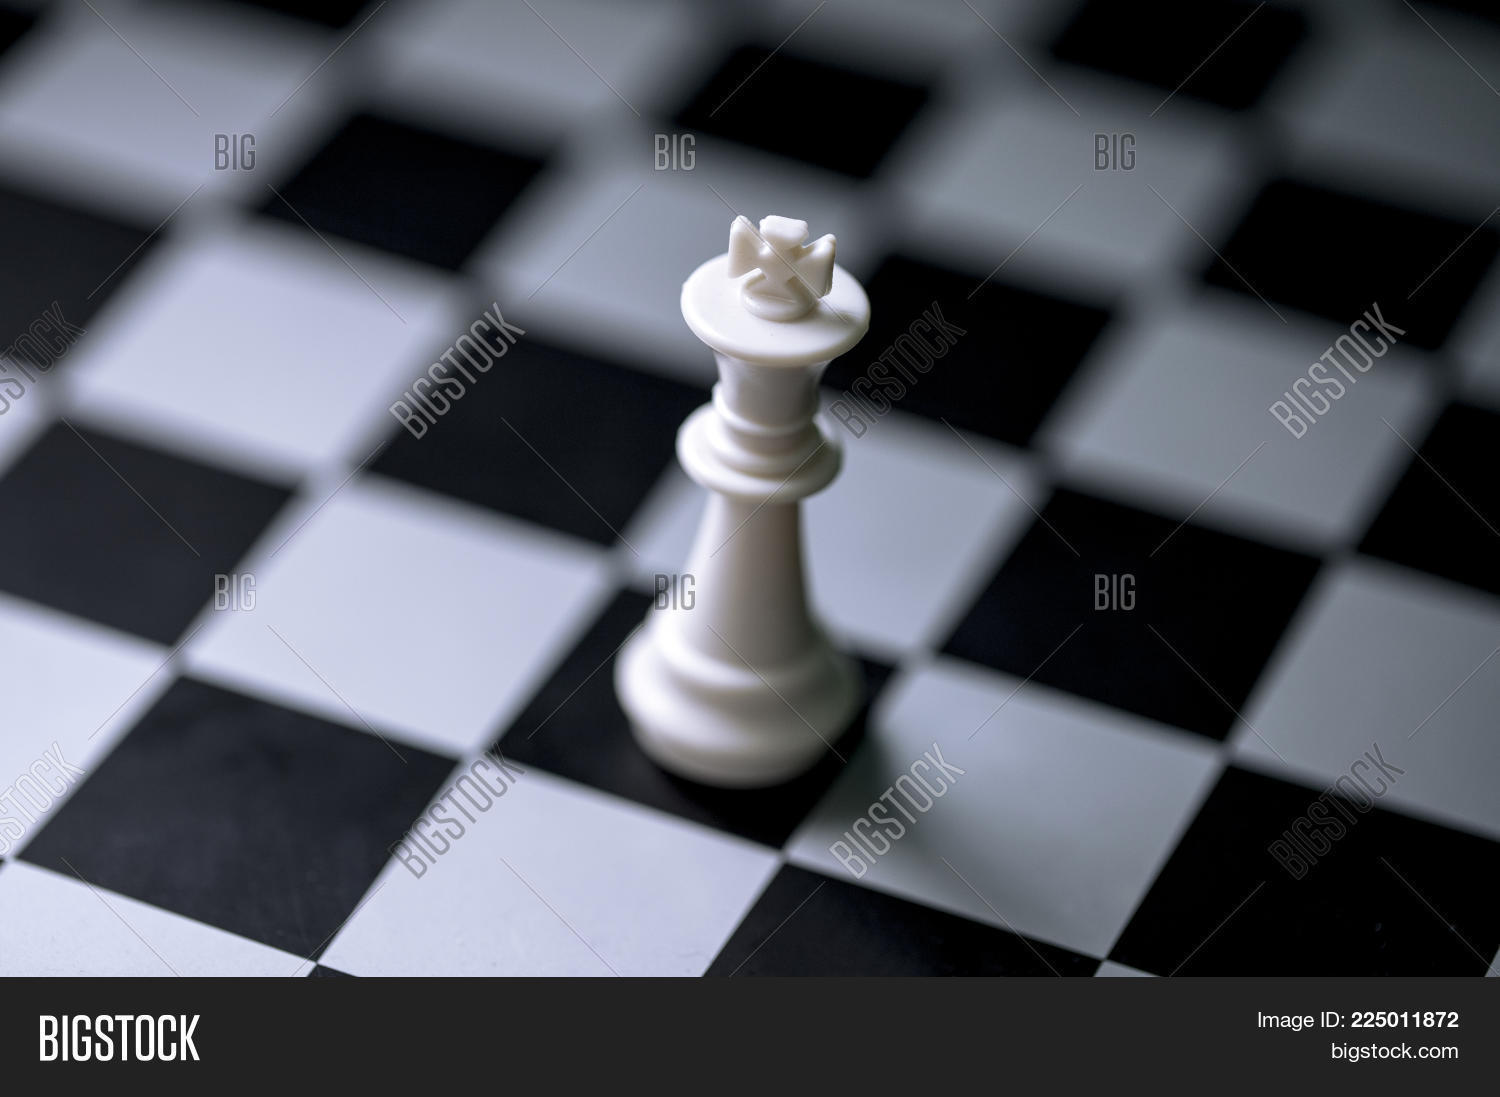 advantage,background,banner,battle,black,board,business,challenge,check,checkmate,chess,chessboard,closeup,competition,concept,conflict,decision,empty,fight,figure,game,intelligence,king,leader,leadership,leisure,line,lose,mate,minimal,move,object,photo,piece,play,process,rise,sport,stalemate,start,strategic,strategy,strong,success,table,teamwork,victory,white,win